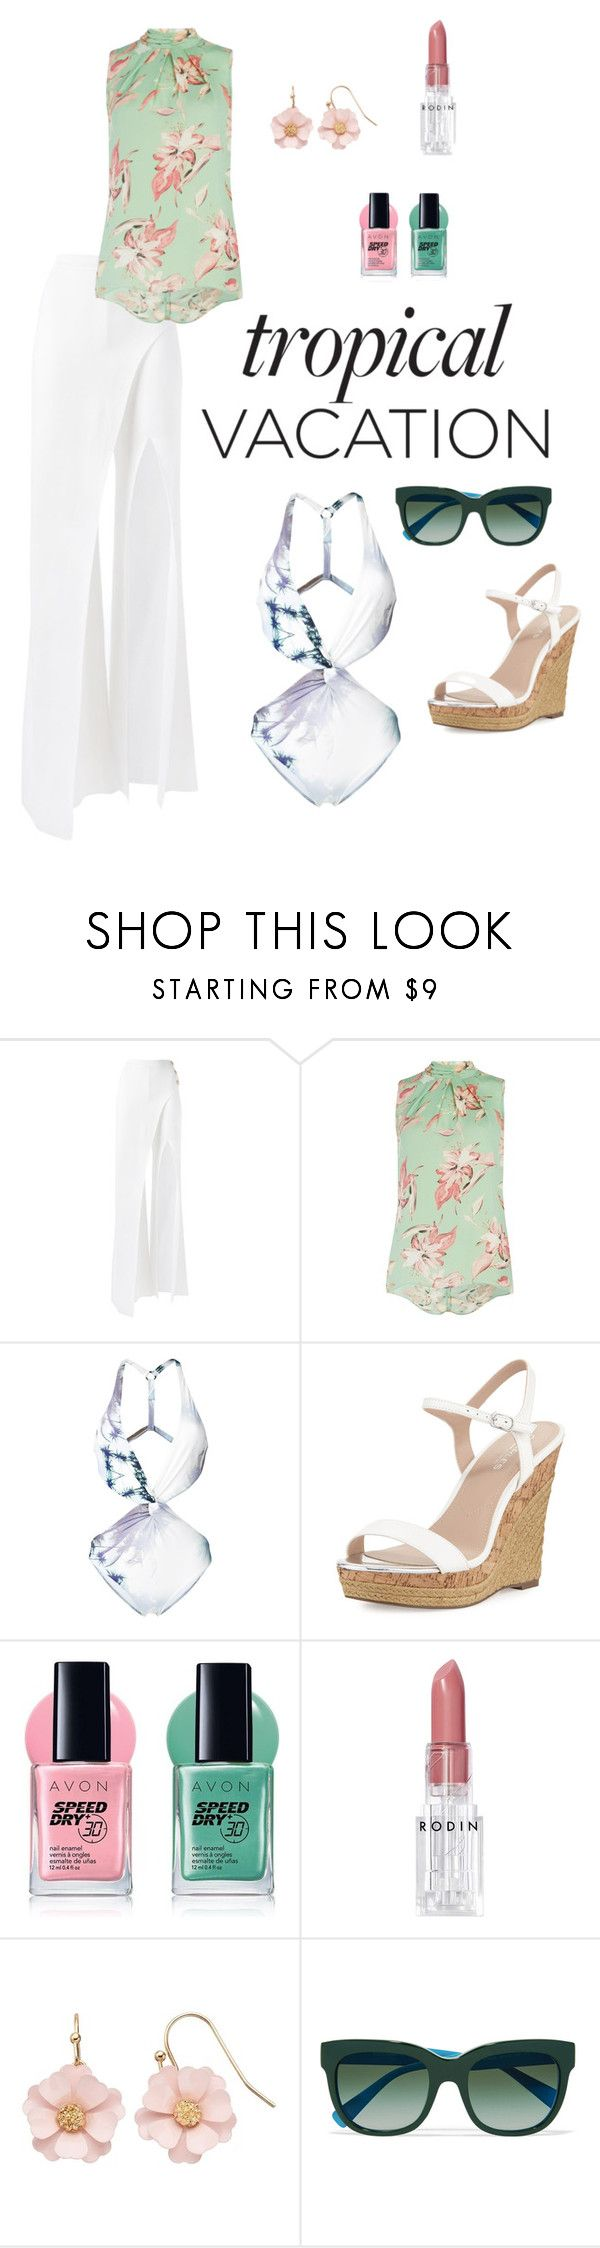 """Untitled #208"" by ladyasdis ❤ liked on Polyvore featuring Balmain, Dorothy Perkins, Fleur of England, Charles by Charles David, Avon, Rodin, LC Lauren Conrad, Dolce&Gabbana, contest and tropicalvacantion"